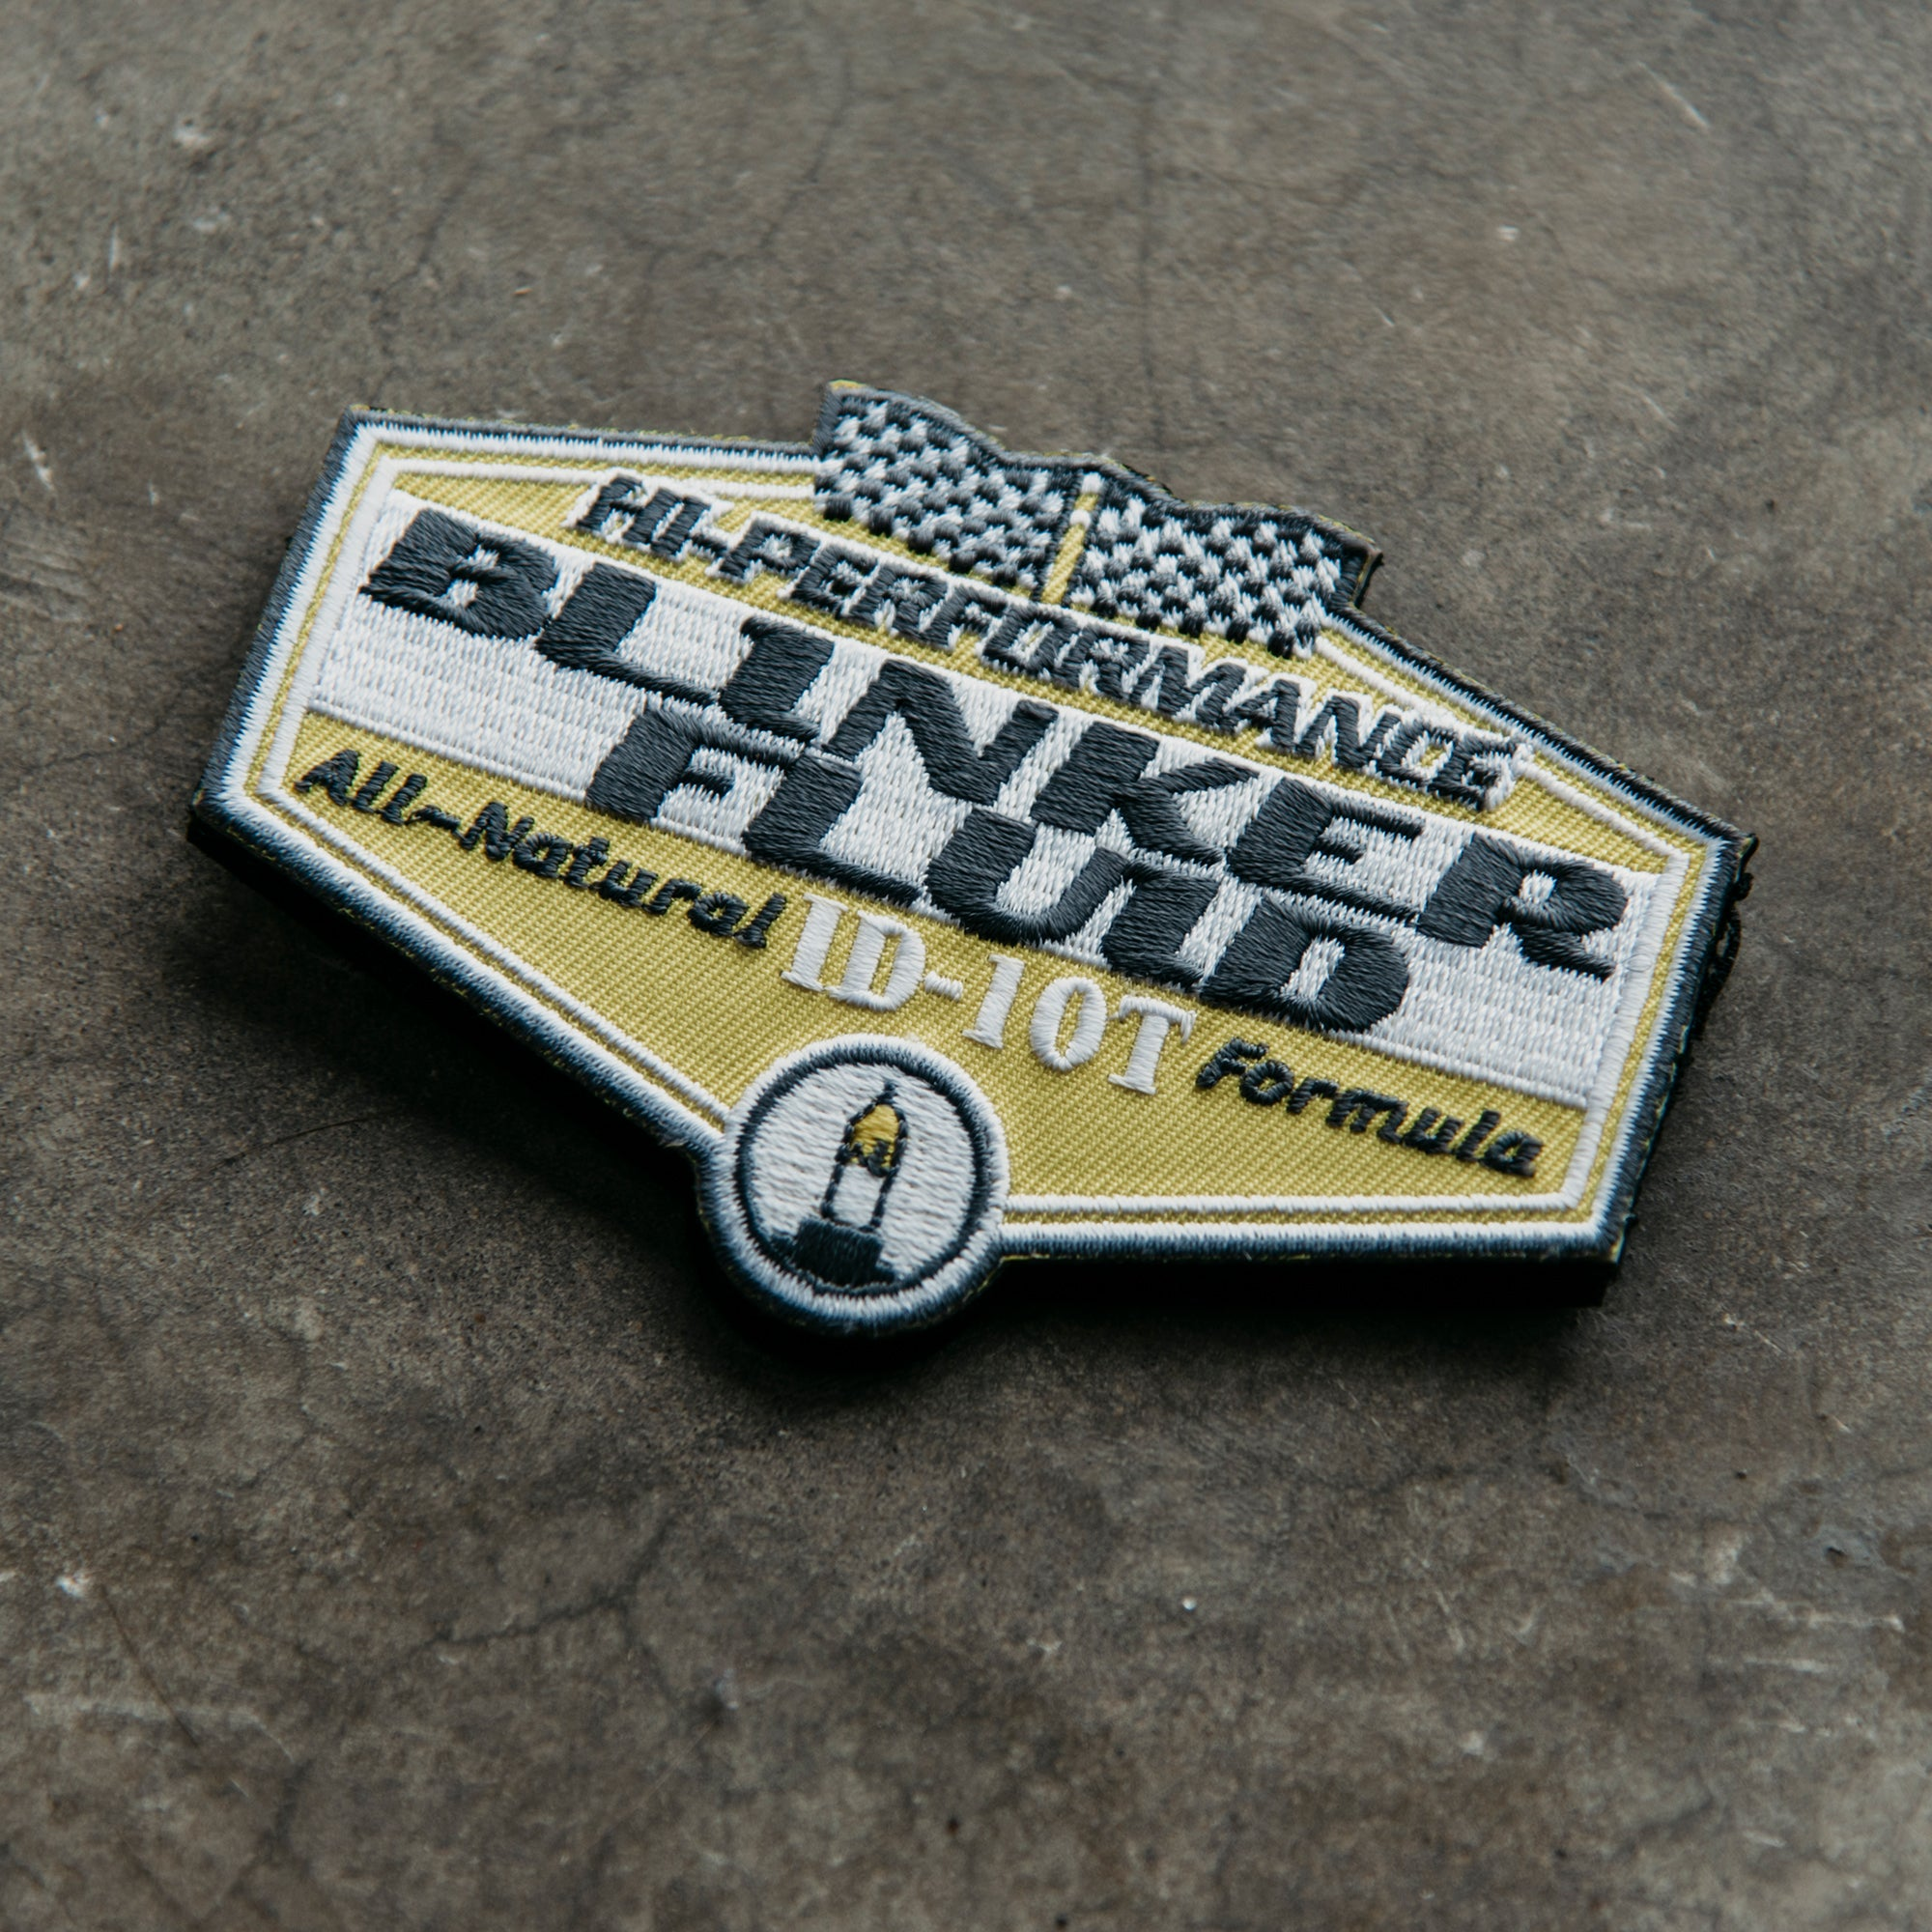 Blinker Fluid Patch